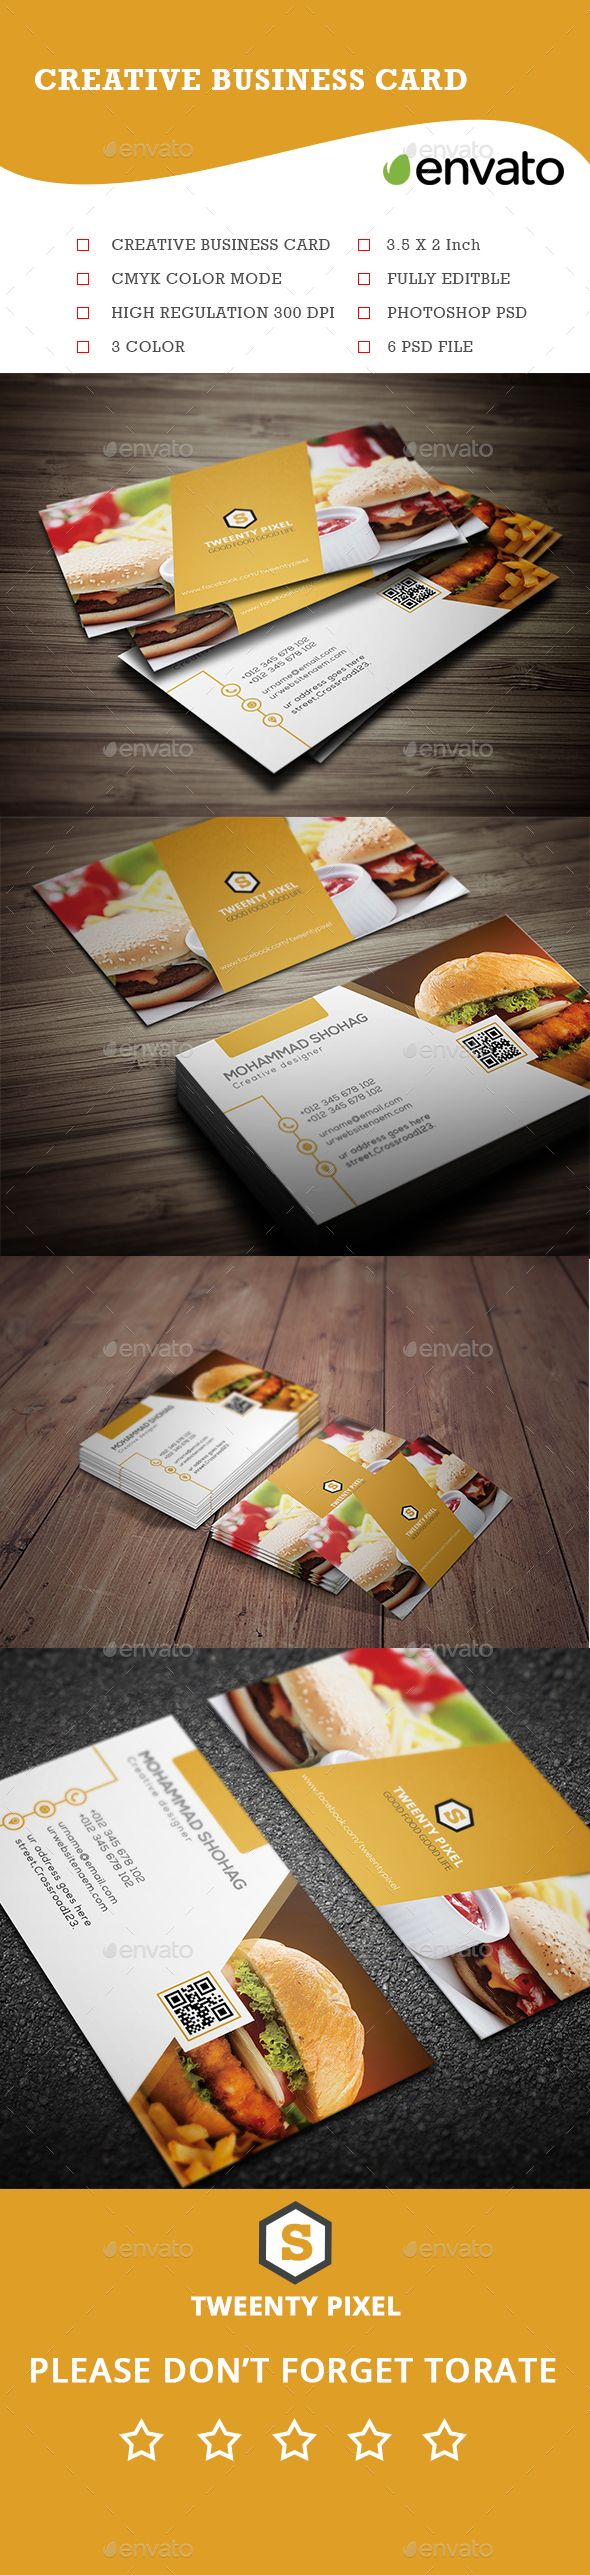 Simple Restaurant Business Card Template PSD #design Download: http://graphicriver.net/item/simple-restaurant-business-card-/14107998?ref=ksioks